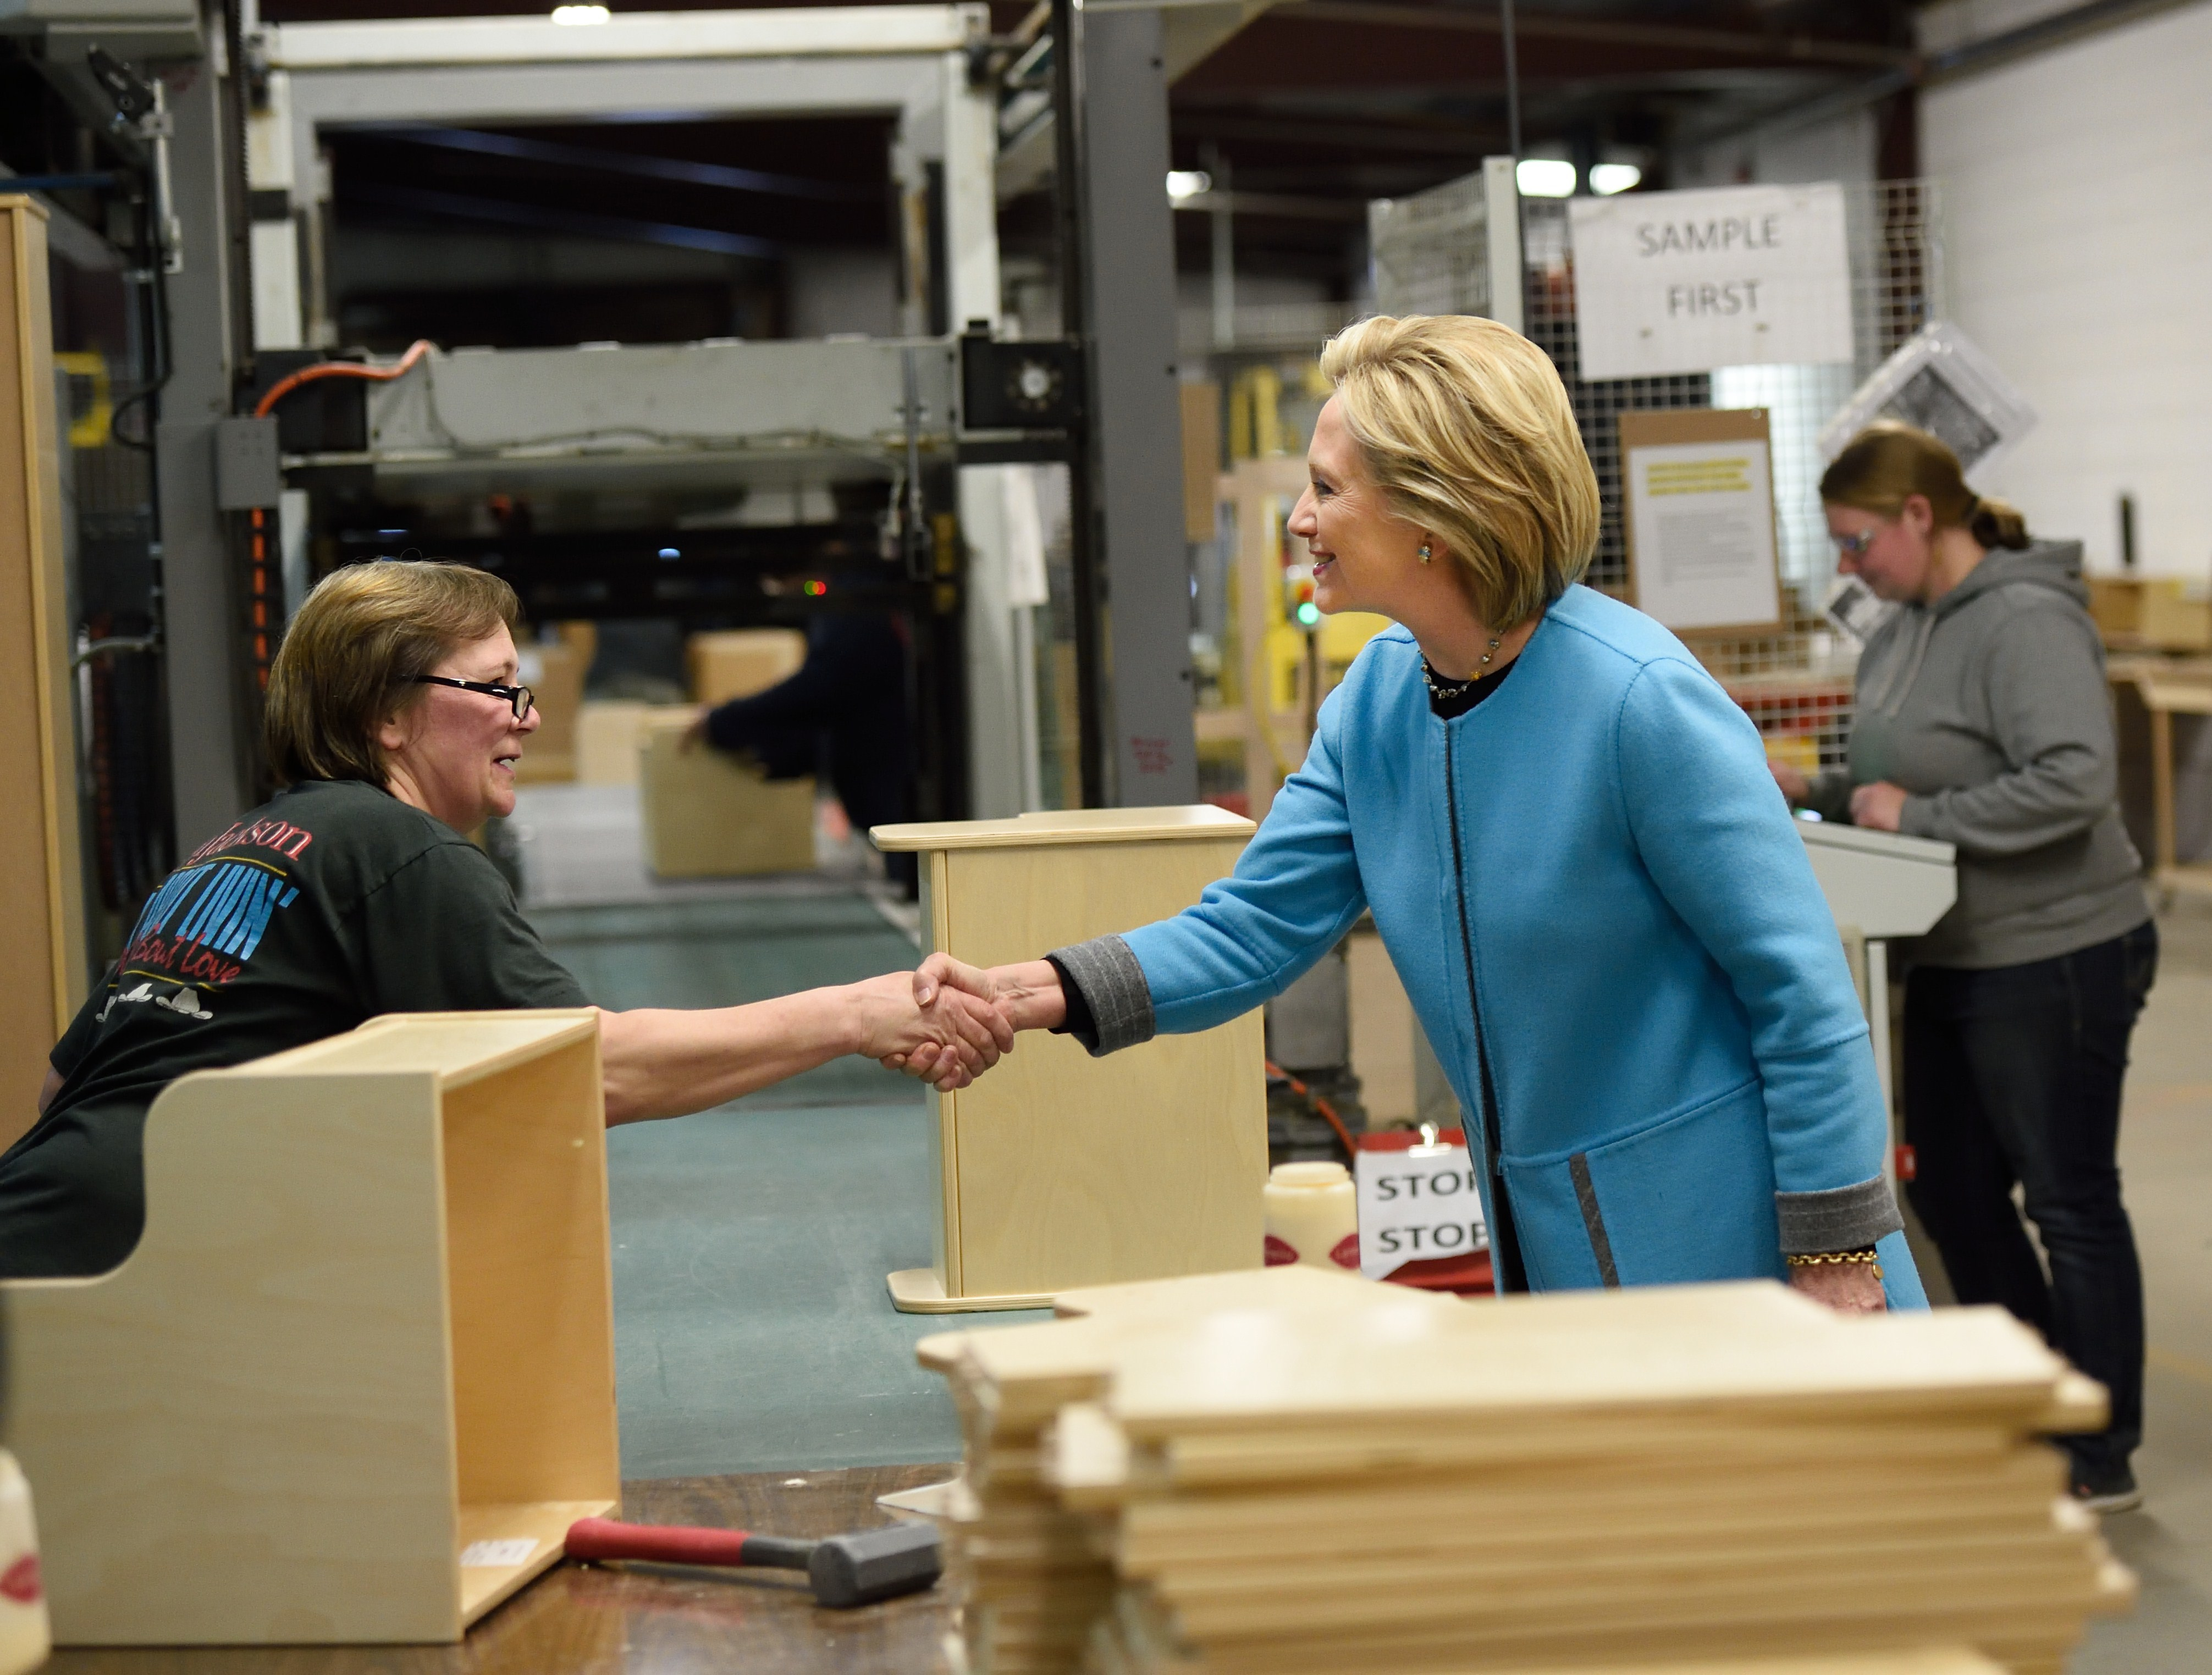 Keene, N.H. - April 20: Clinton visited a family-owned children's furniture factory to talk small business and manufacturing. Planks of wood, stacked boxes and heavy machinery formed an ideal backdrop.